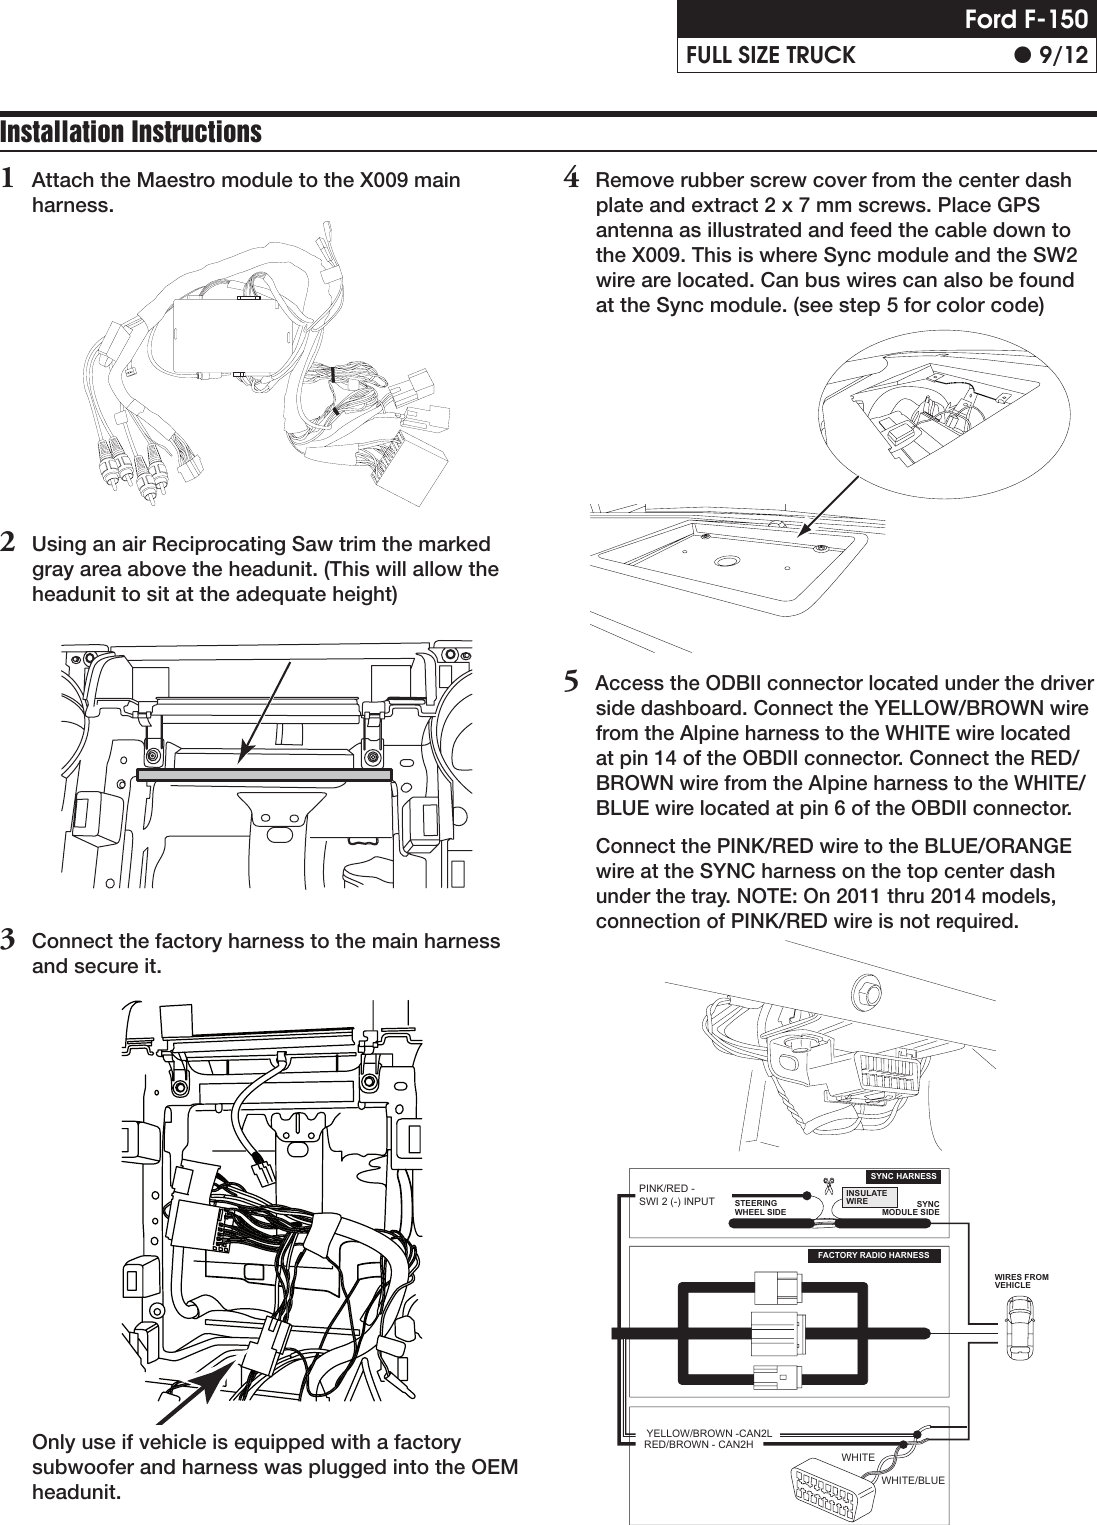 Alpine X009 Fd1 Installation Manual Ford Wiring Color Guide Page 9 Of 12